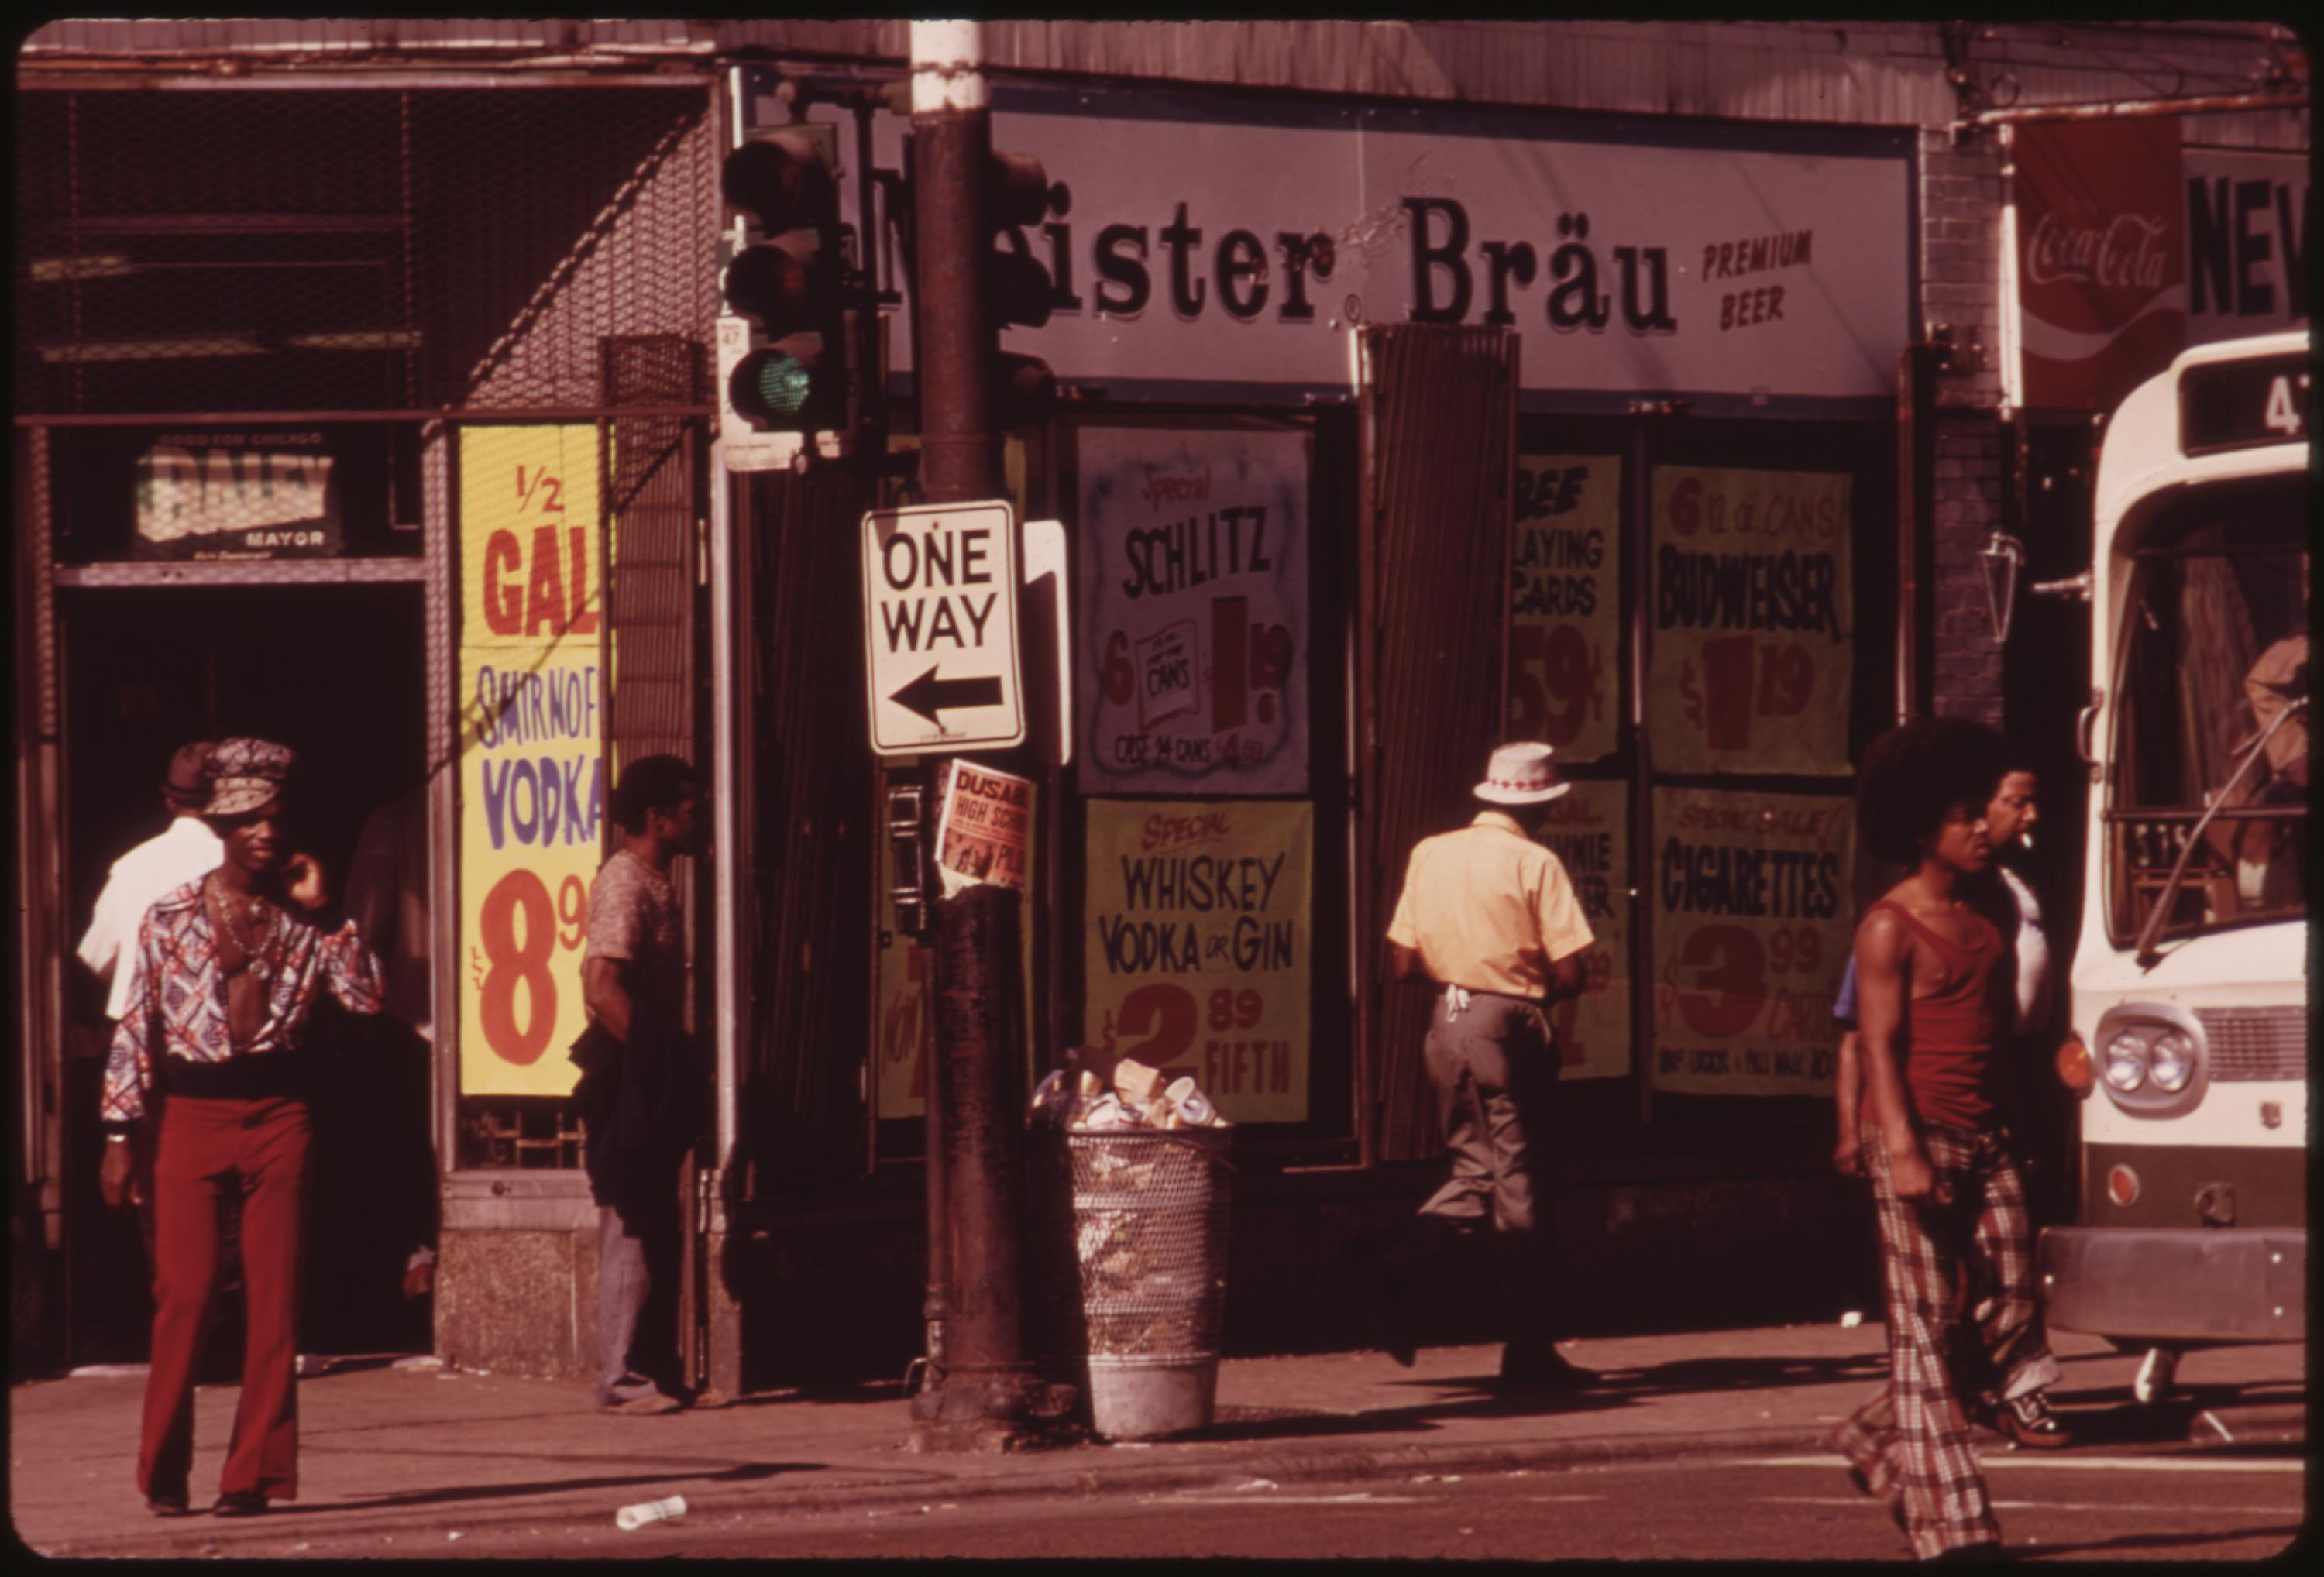 Street Scene On 47th Street In South Side Chicago, A Busy Area Where Many Small Black Businesses Are Located, 06:1973 John H White